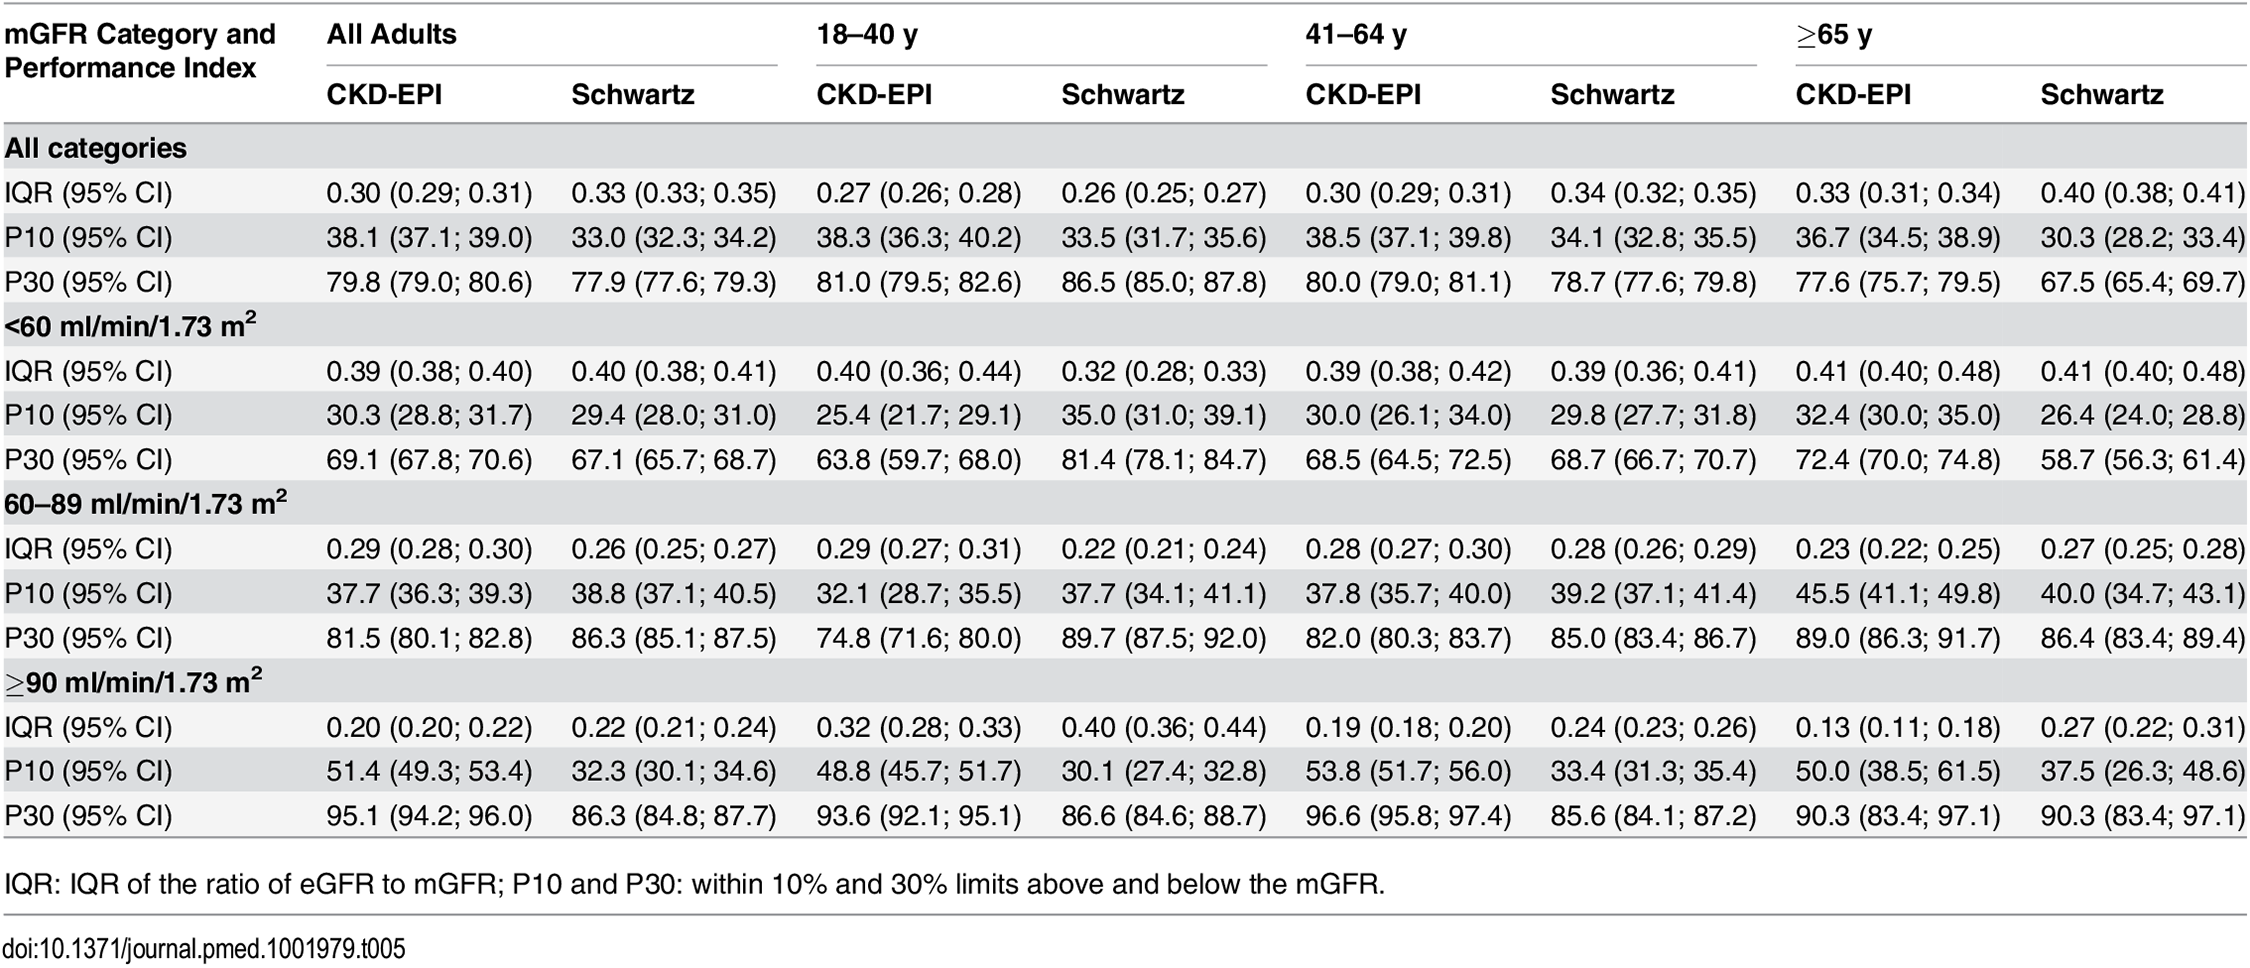 Precision and accuracy of the CKD-EPI and Schwartz equations according to age and mGFR in adults (≥18 y).